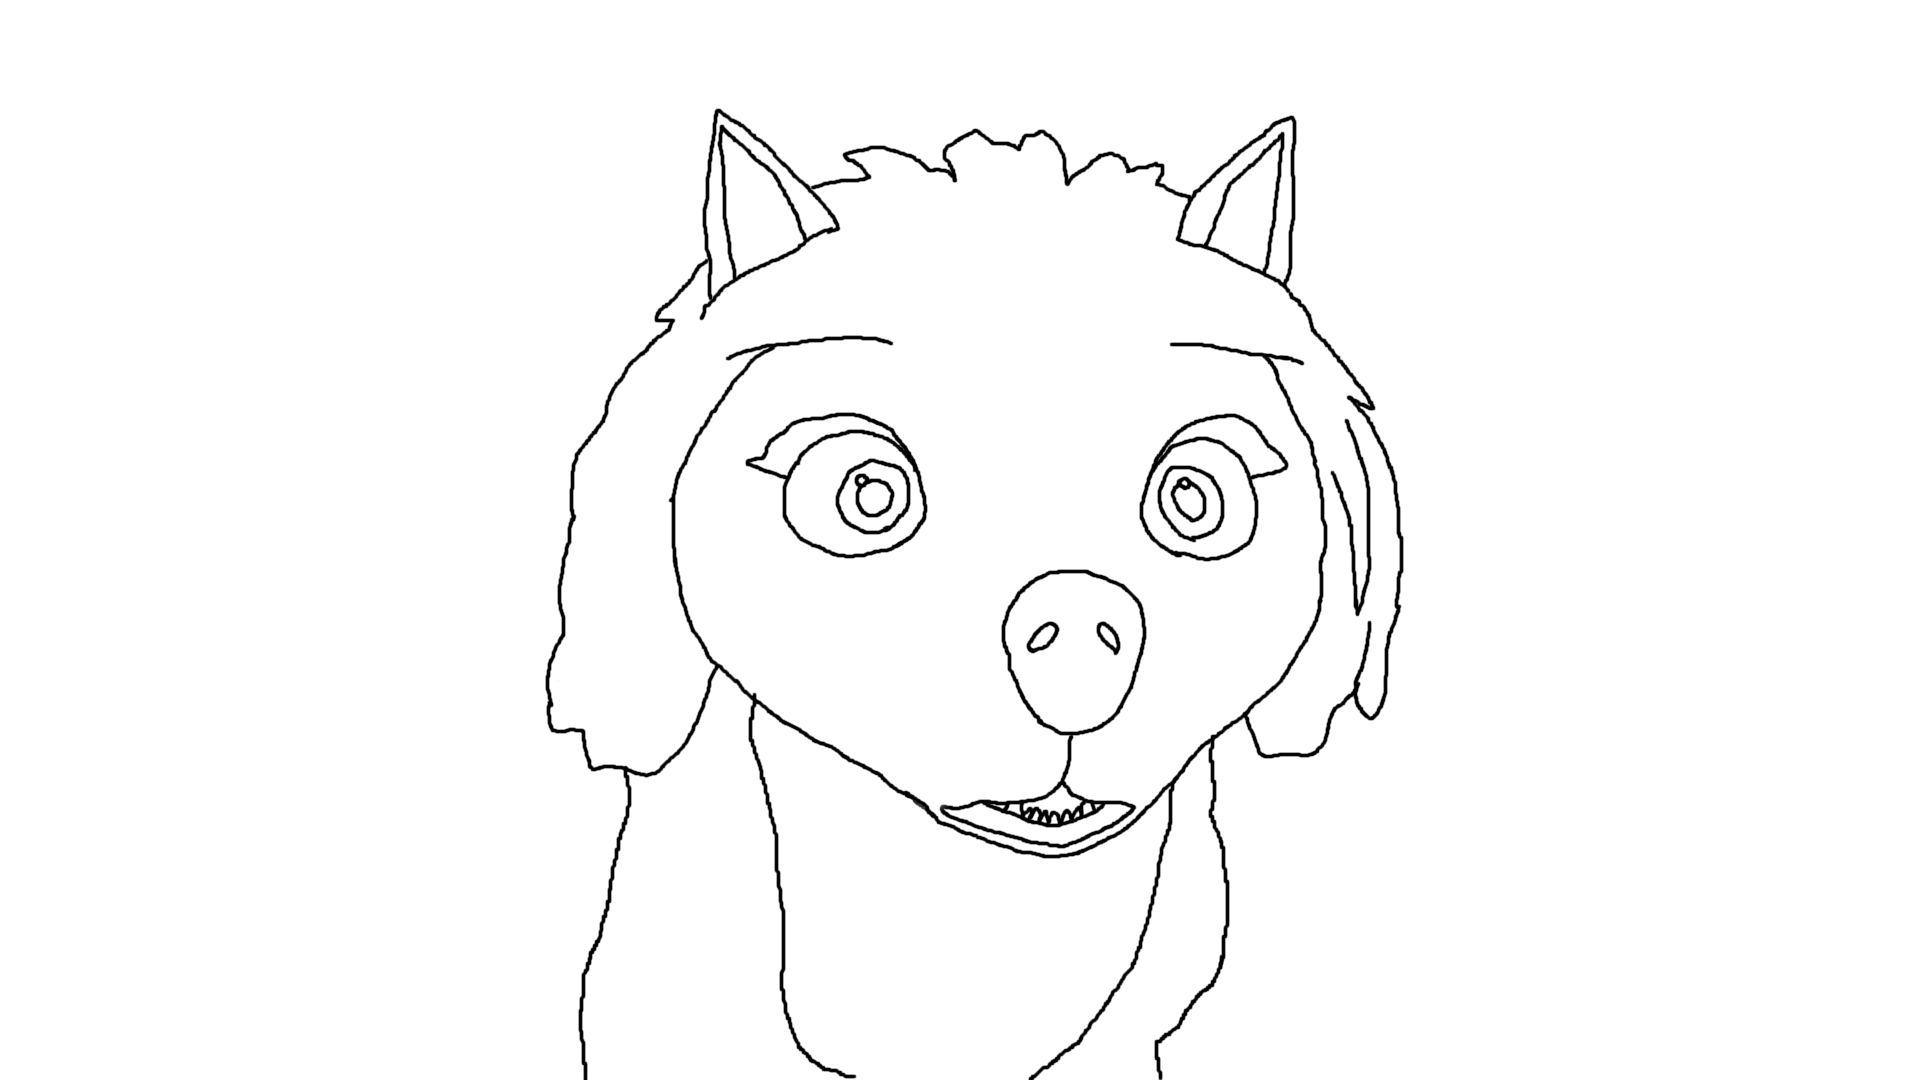 Alpha omega movie coloring pages